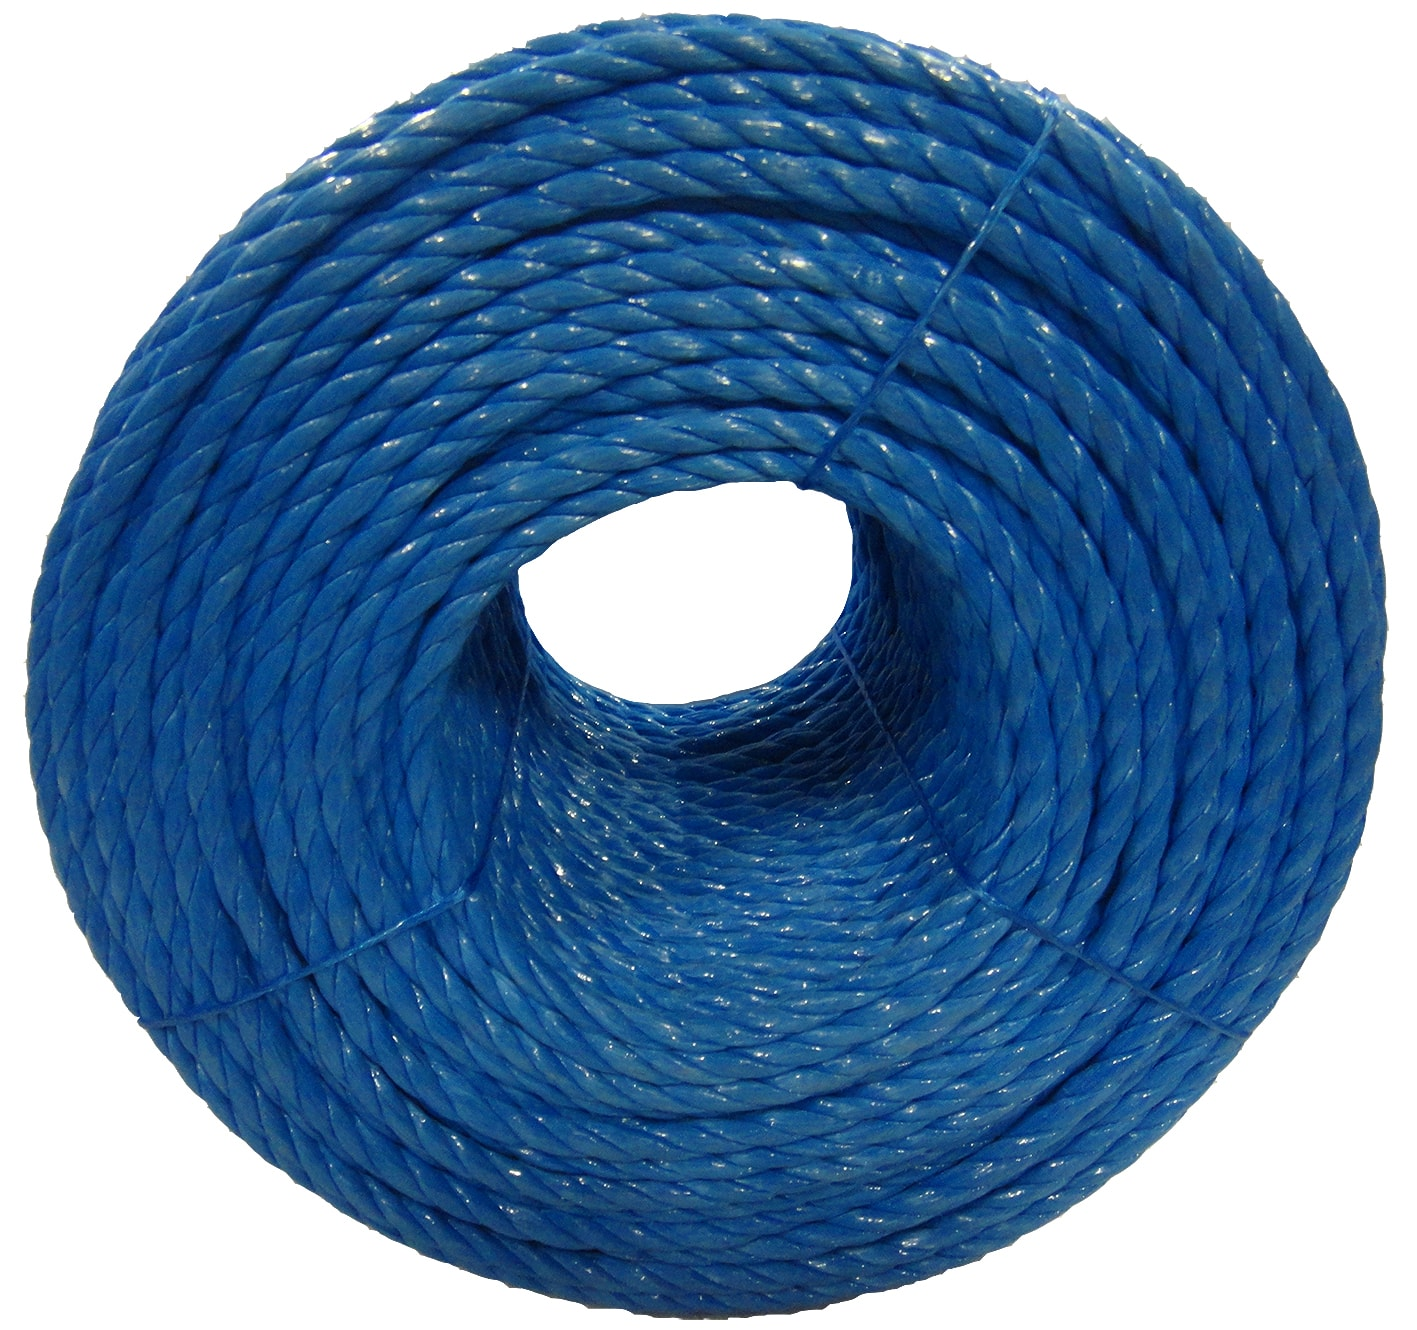 Polypropylene rope - 12mm Dia Blue x 50m Mini Coil